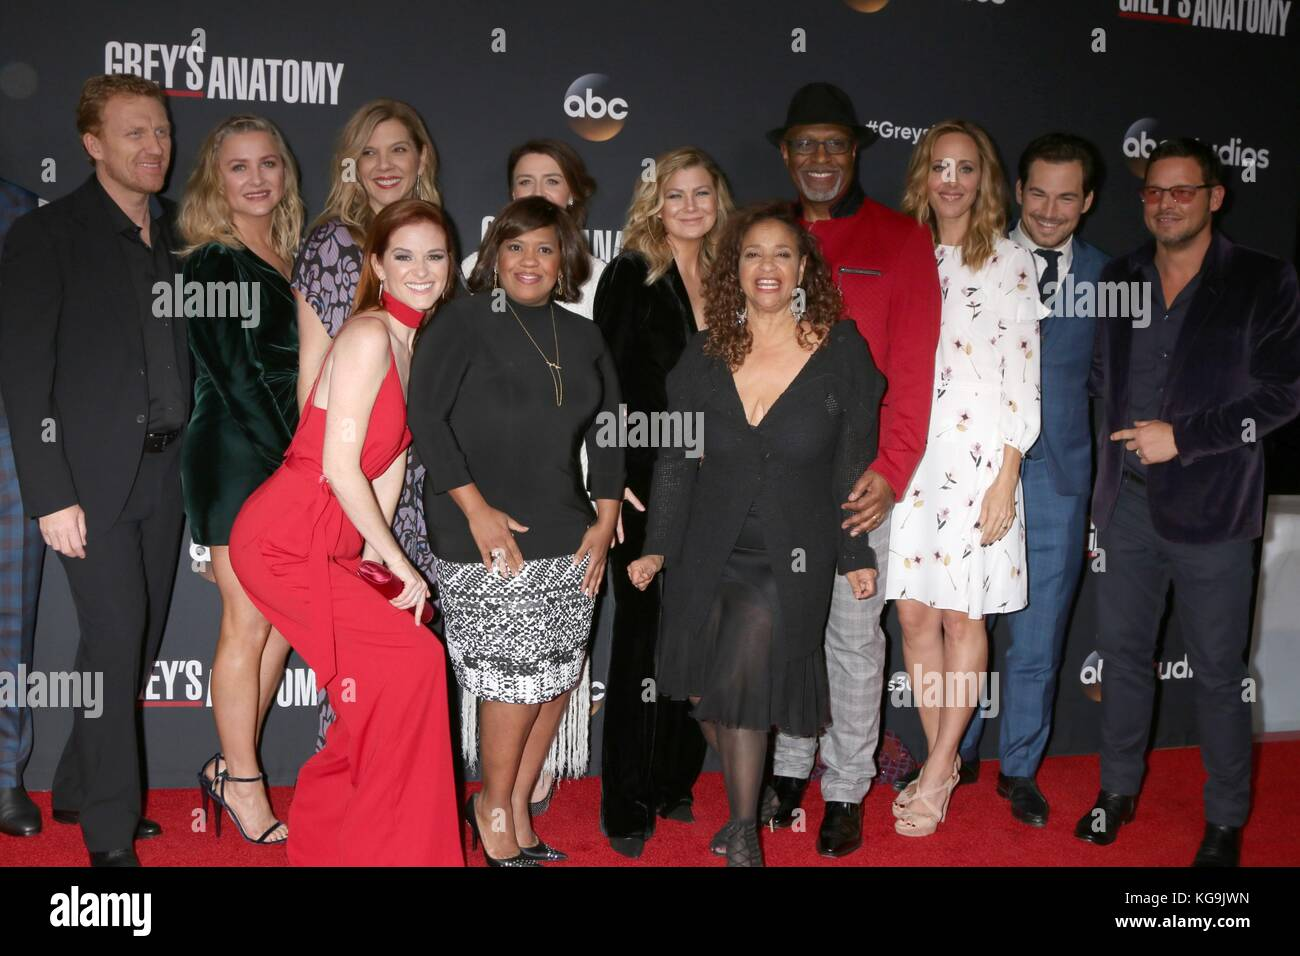 Cast Of Greys Anatomy Imágenes De Stock & Cast Of Greys Anatomy ...